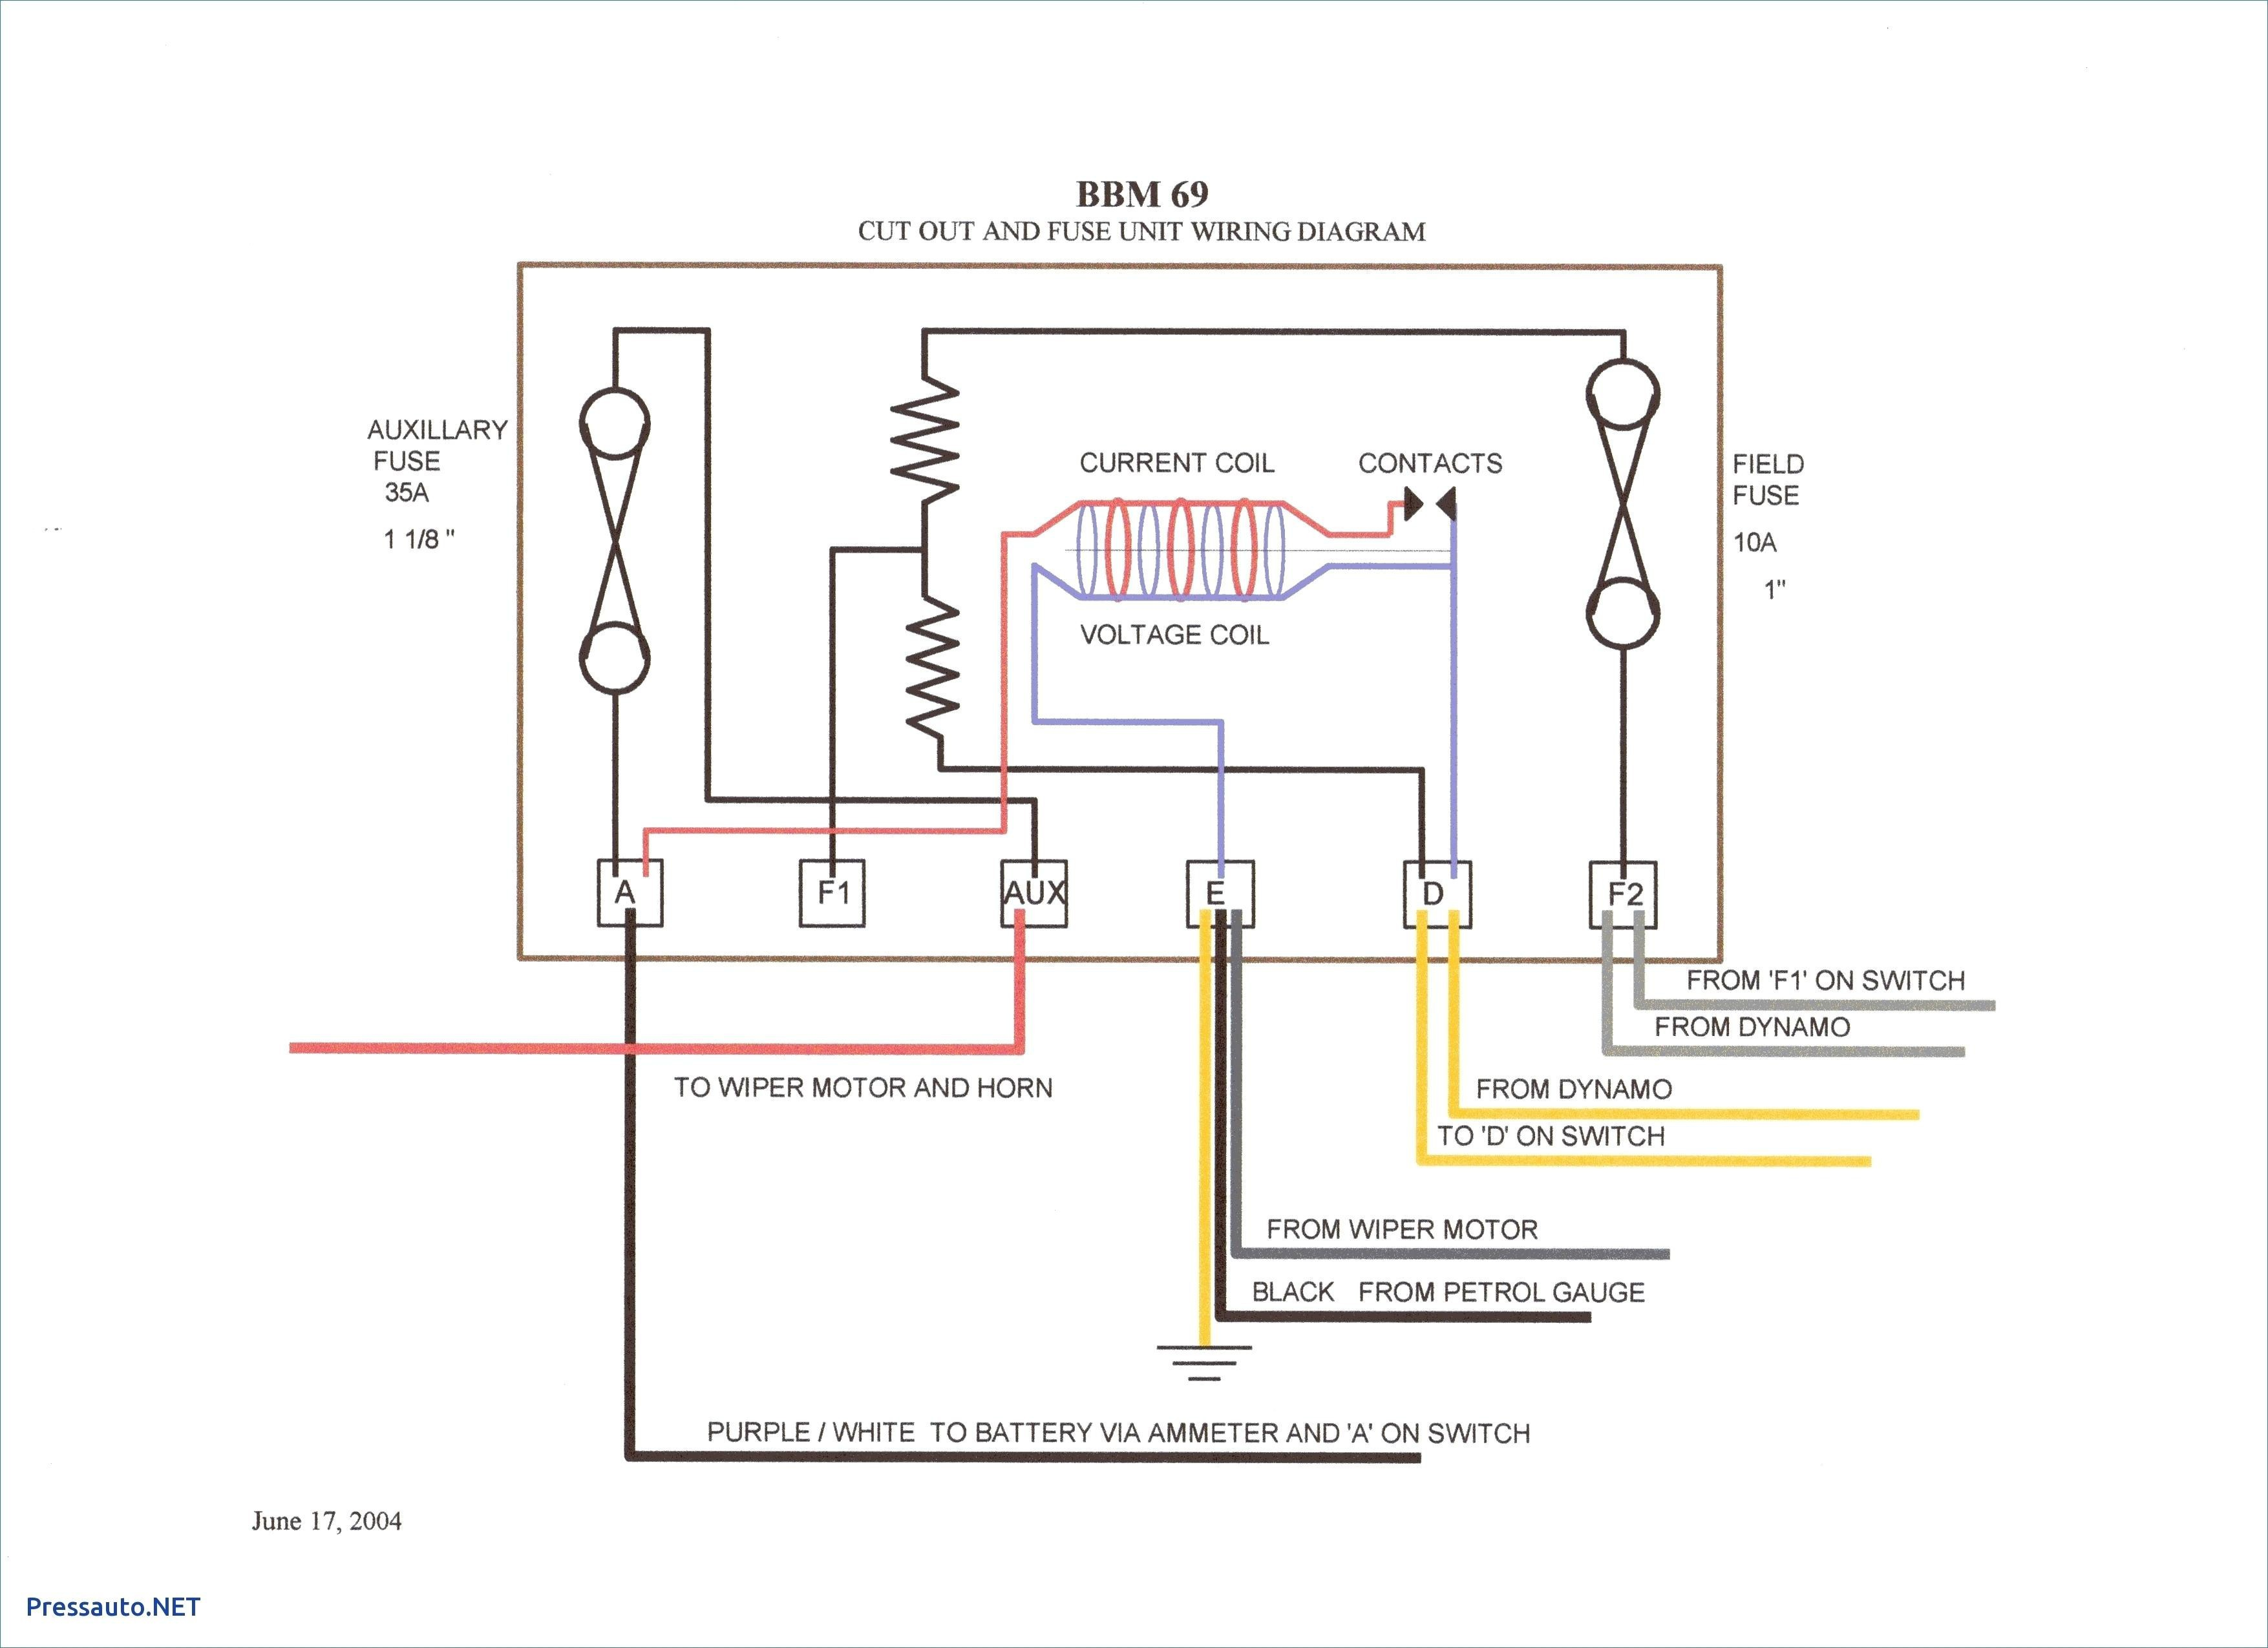 Wiring Diagram For Unvented Cylinder Fresh Water Heater Wiring Diagram Dual Element Best Hot Water Heater